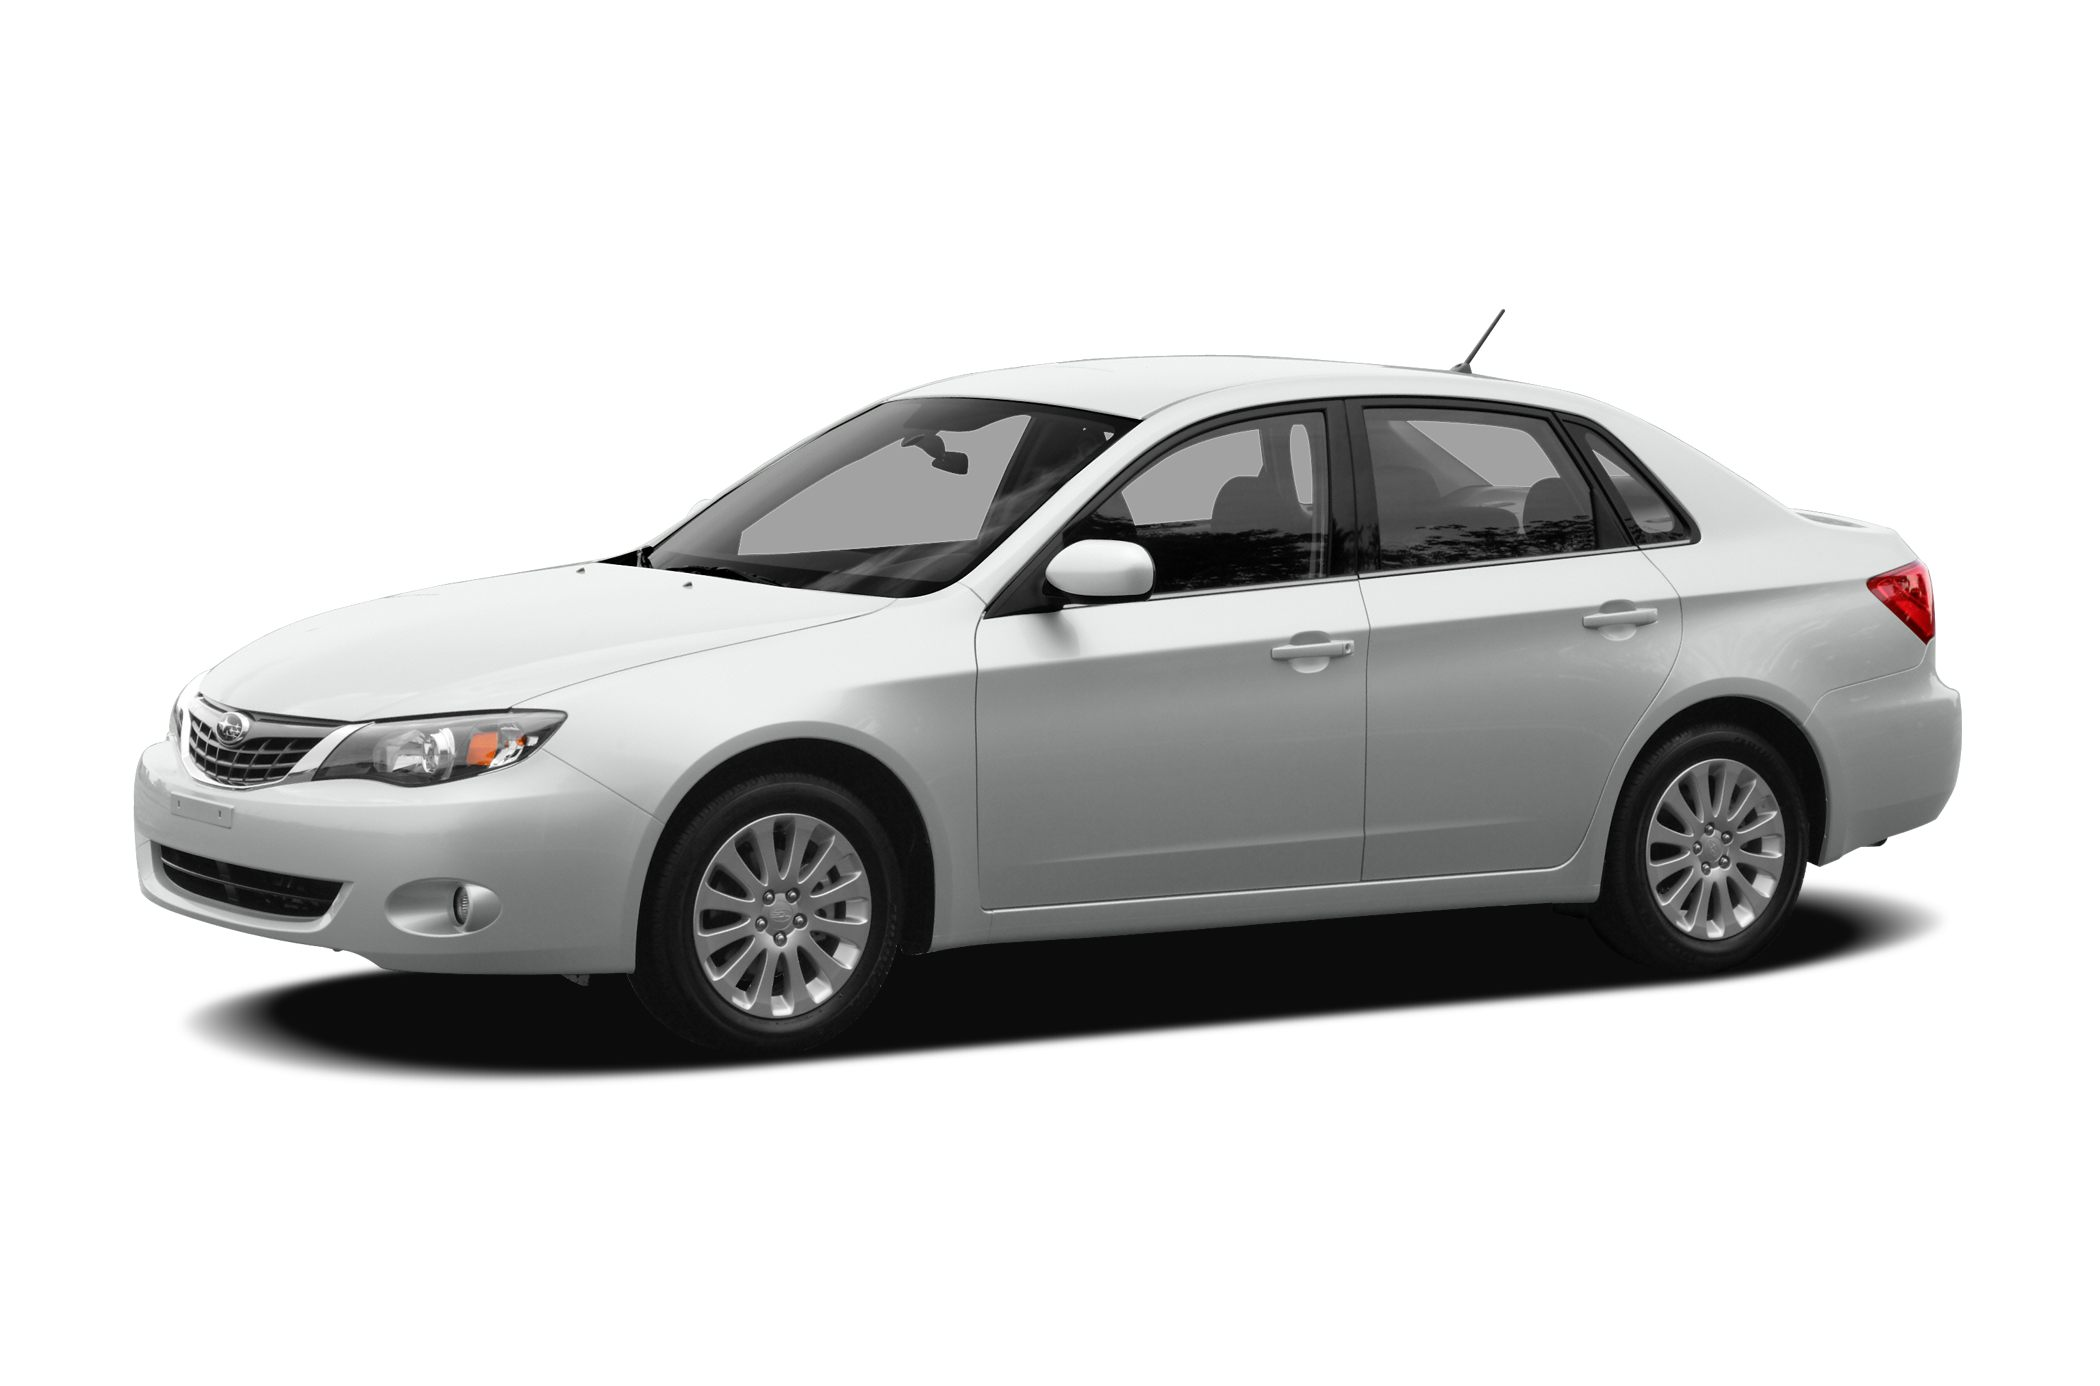 2008 Subaru Impreza WRX Hatchback for sale in Hudson for $0 with 0 miles